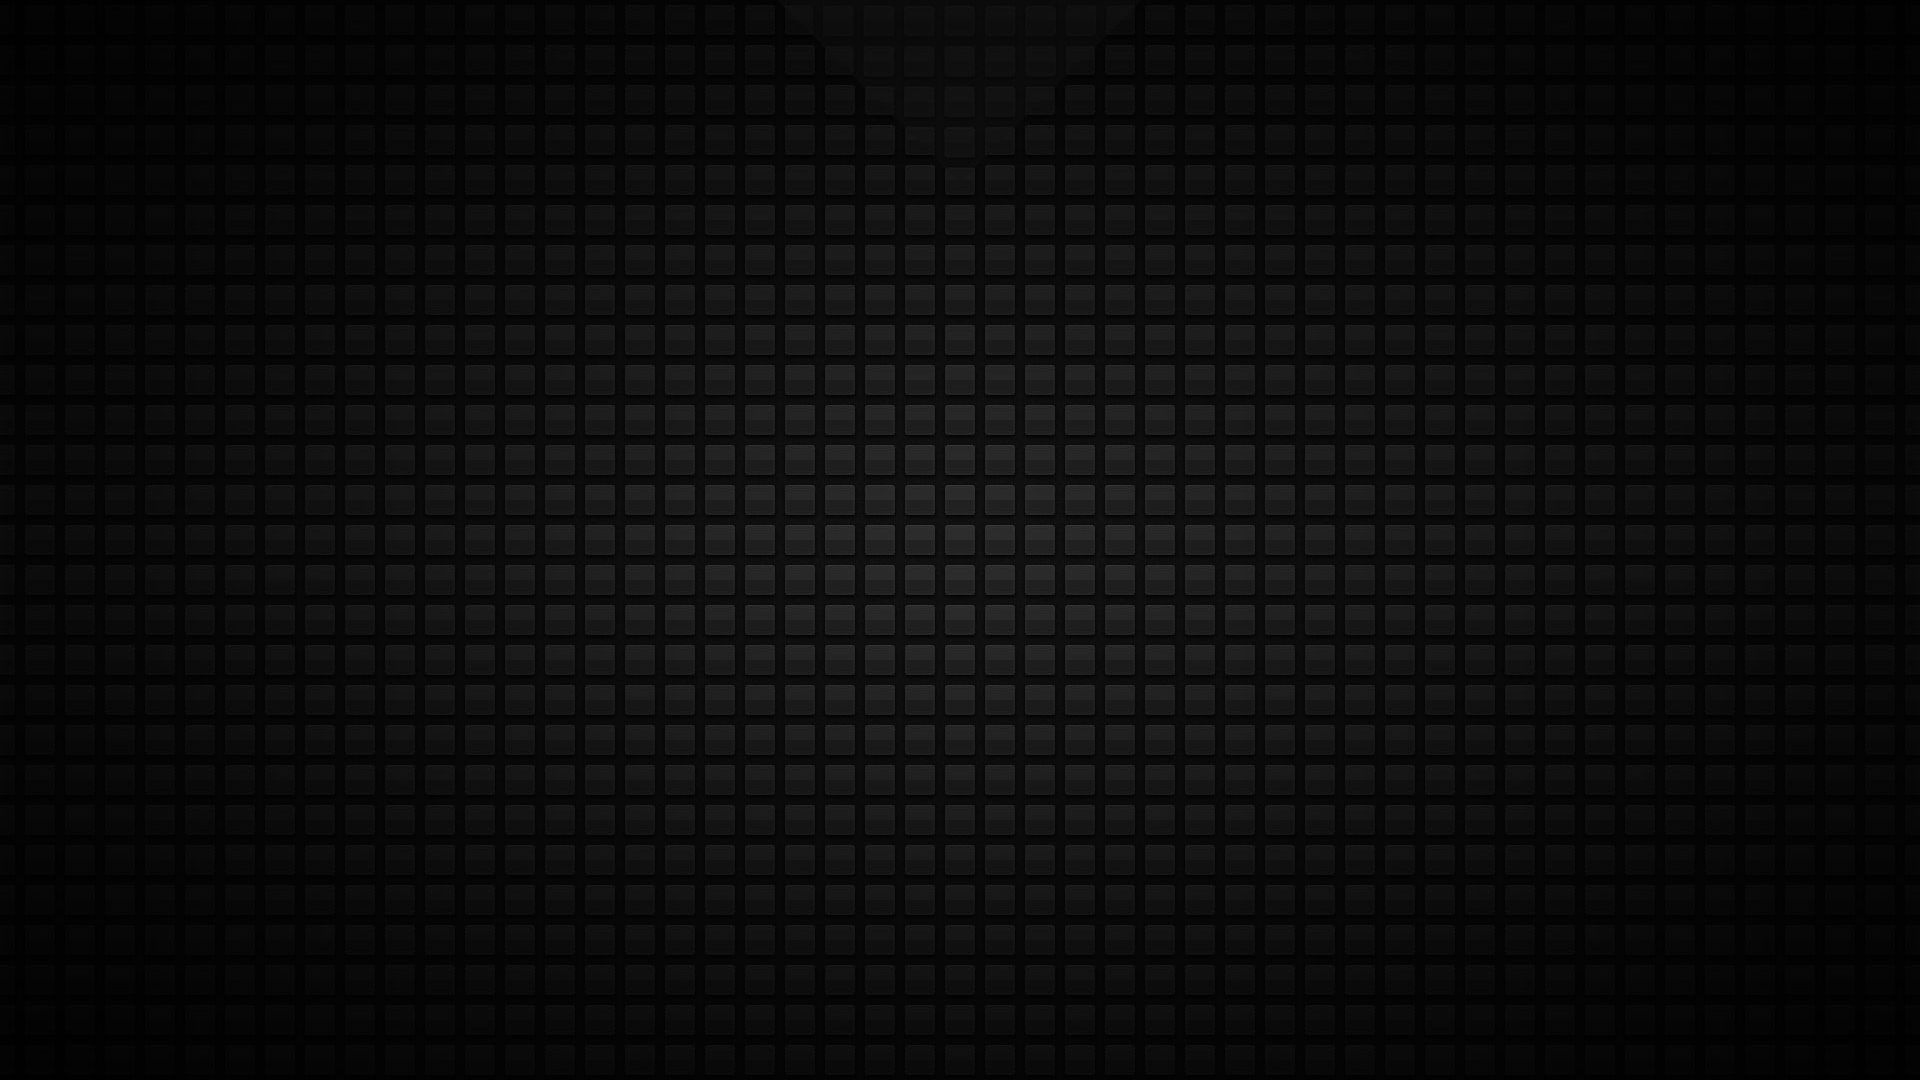 Dark Grey Wallpaper - WallpaperSafari